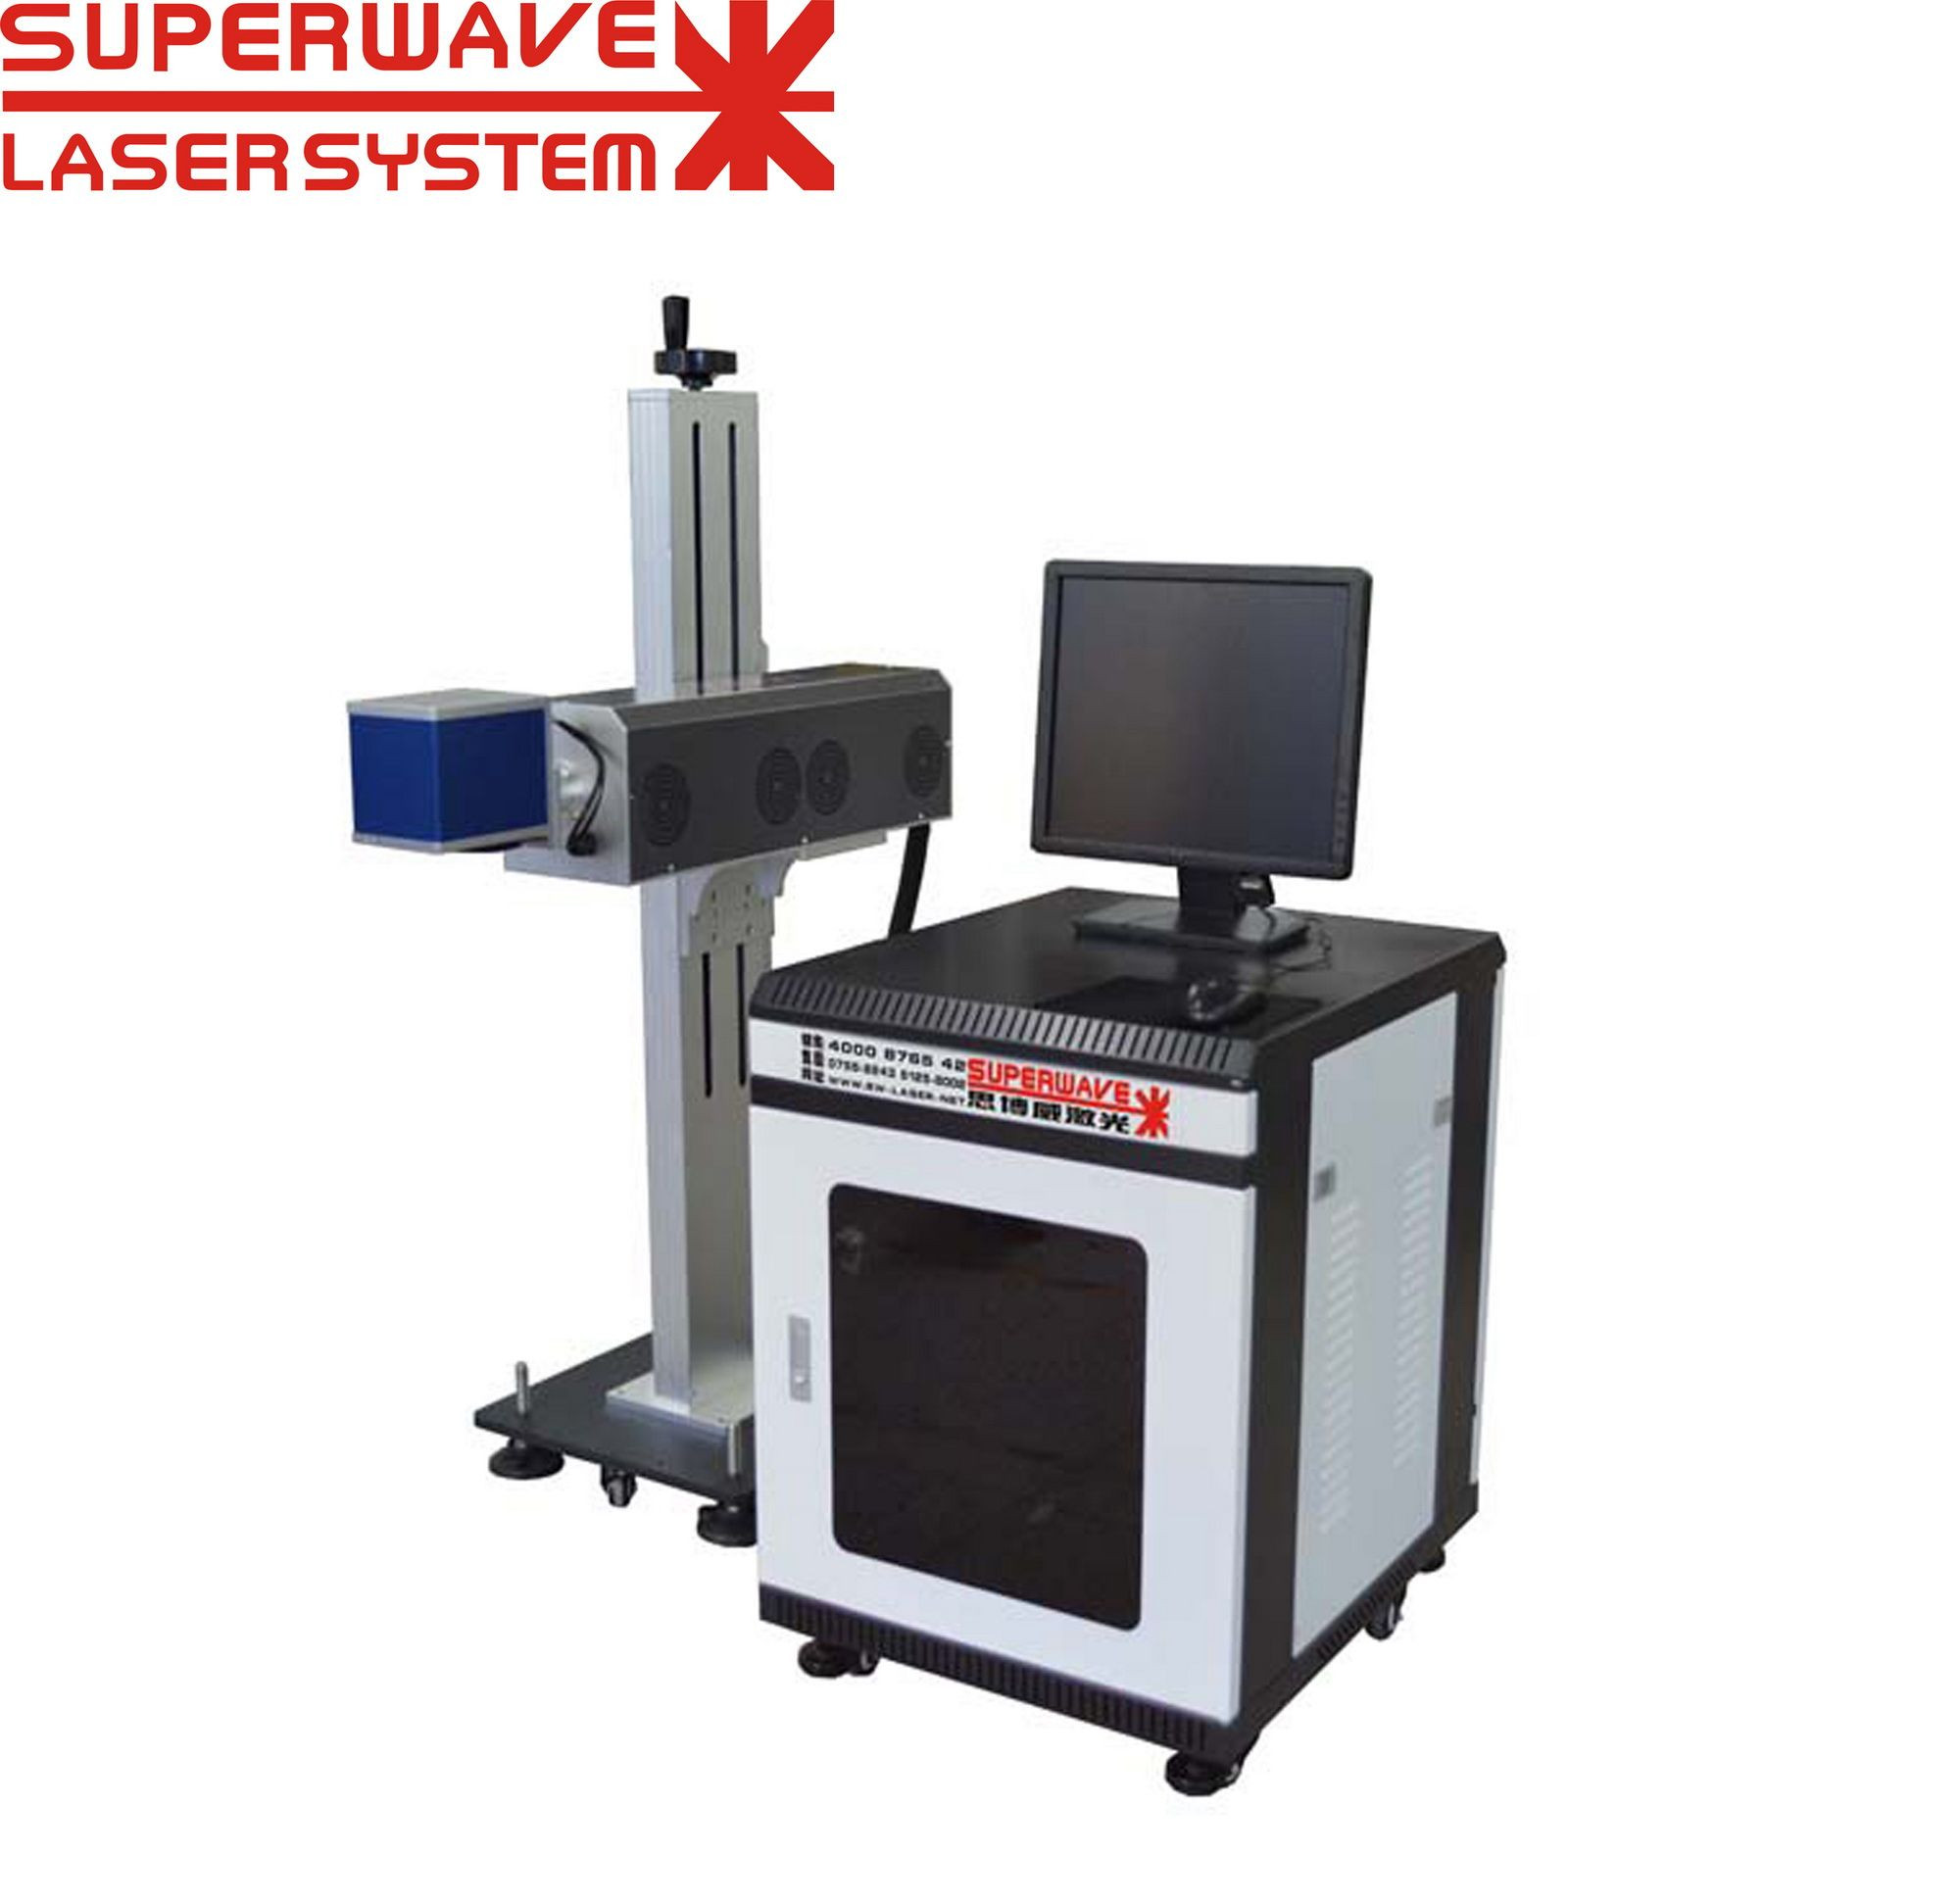 Widely Used CO2 laser marking machine